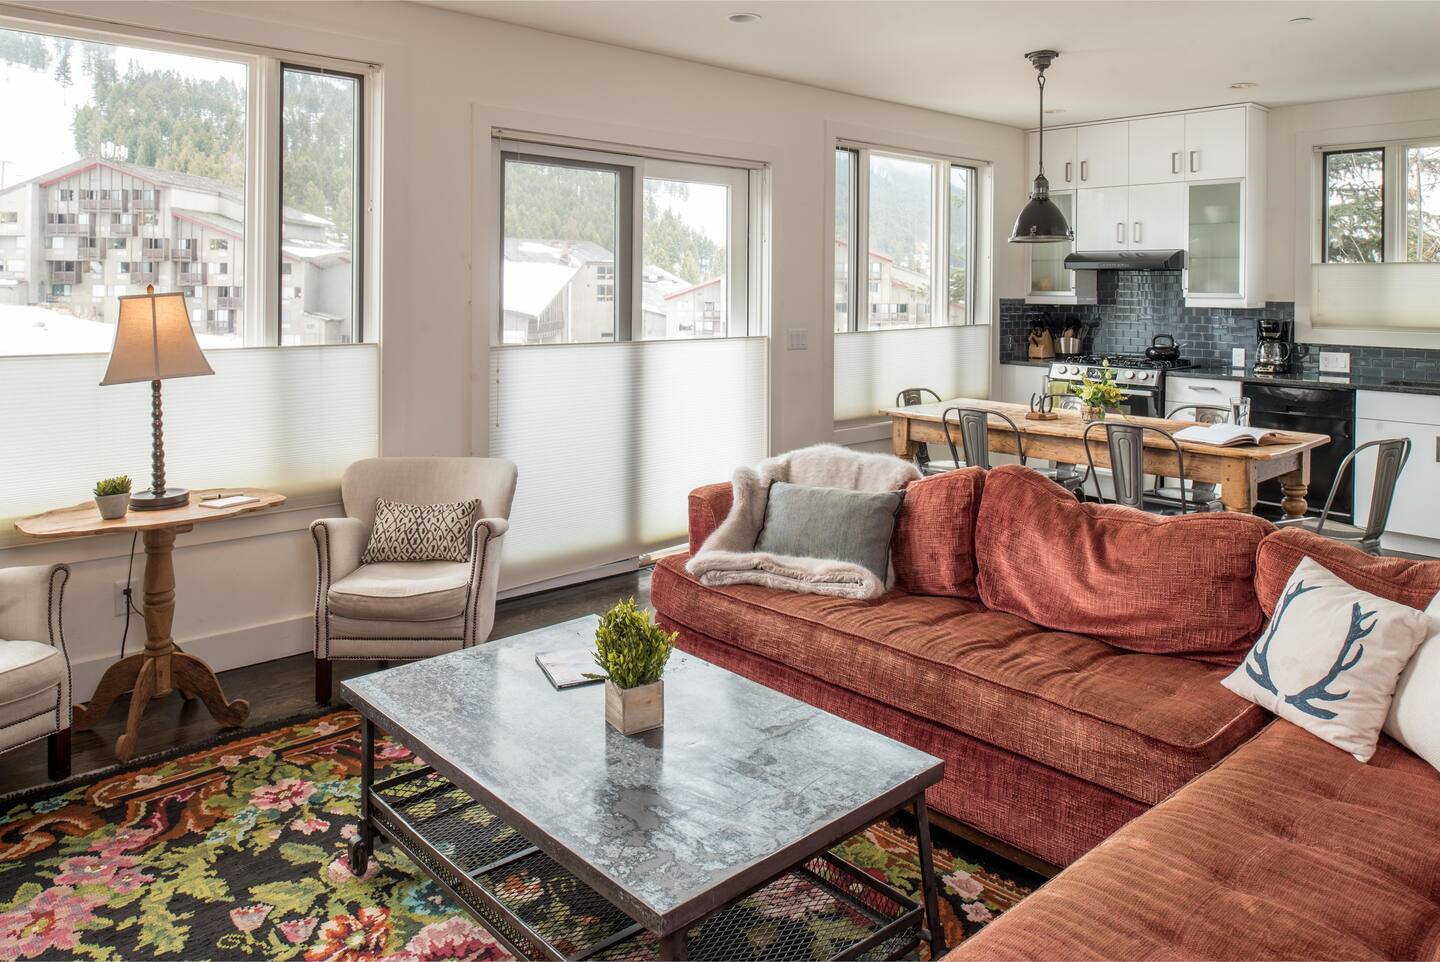 King Ridge 7 Penthouse Airbnbs in Jackson Hole